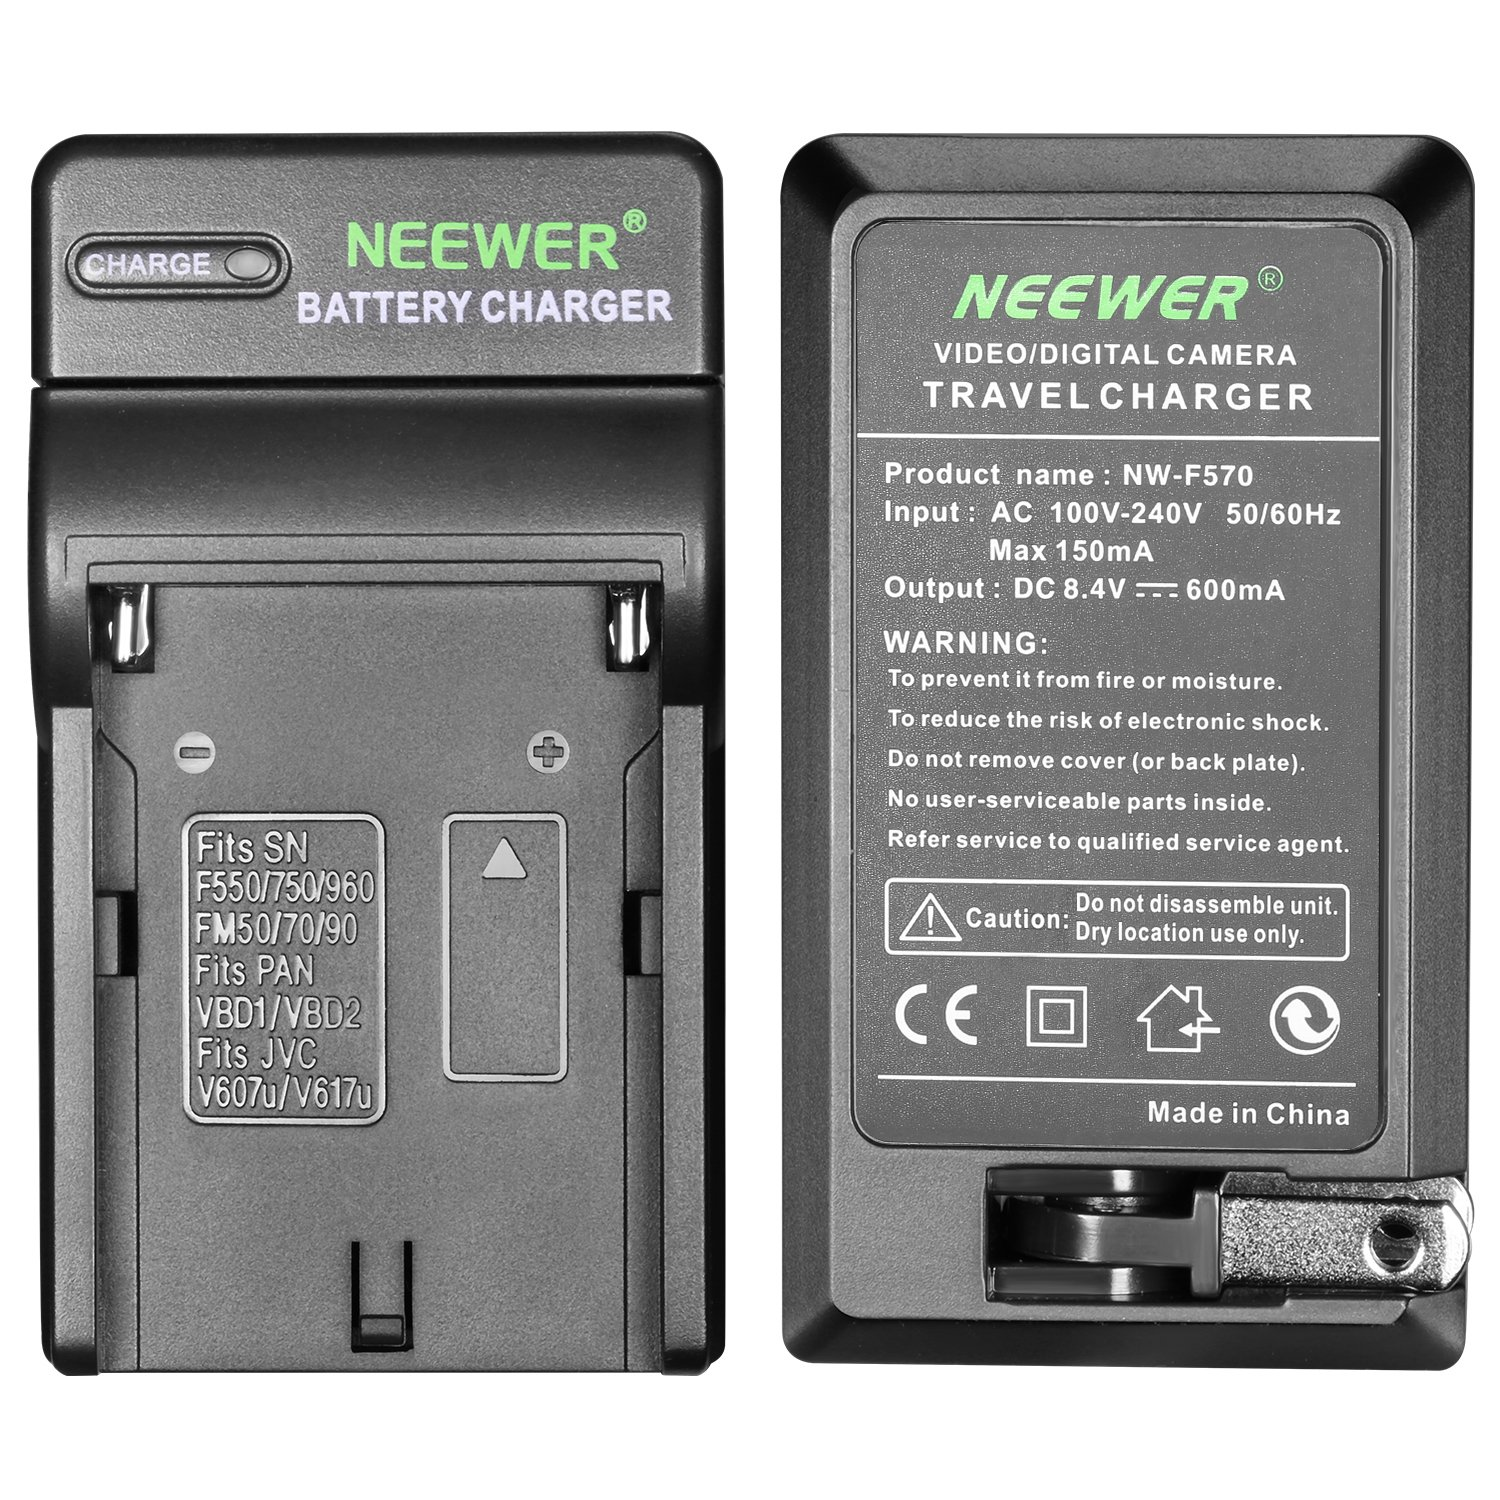 Neewer Dimmable 176 LED Video Light on Camera LED Panel with 2600mAh Li-ion Battery and Charger for Canon, Nikon, Samsung, Olympus and Other Digital SLR Cameras for Photo Studio Video Photography by Neewer (Image #6)